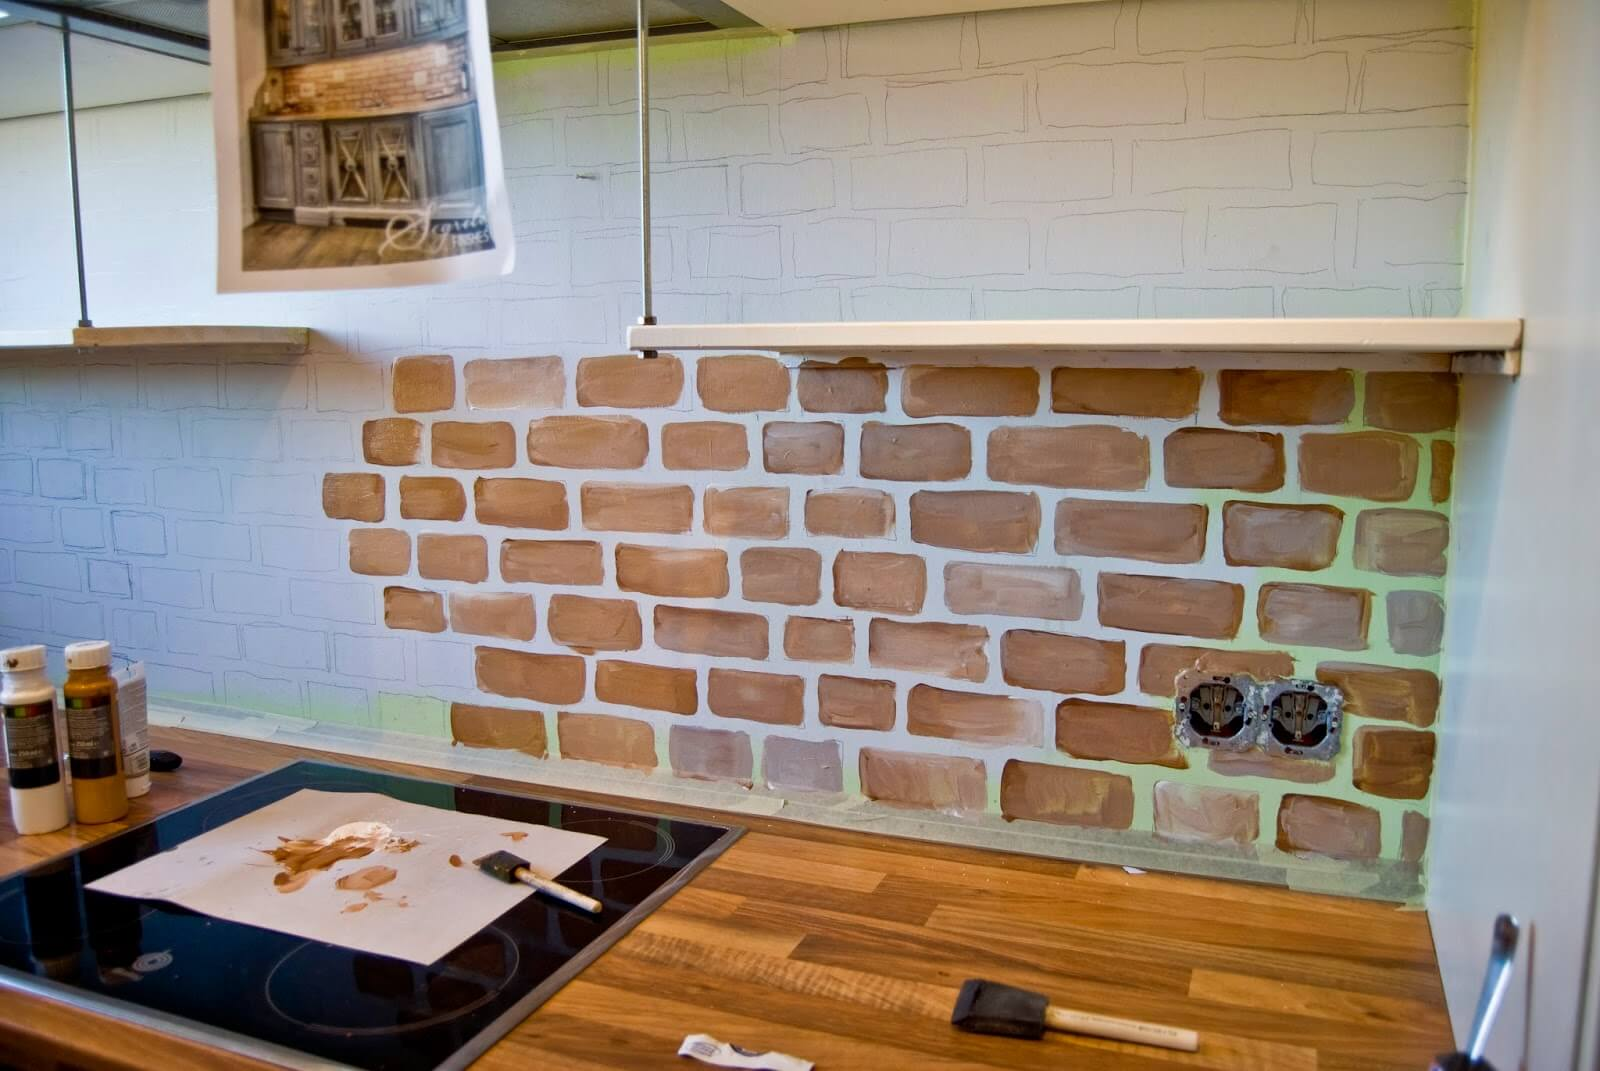 Faux brick still looks pretty original in the kitchen